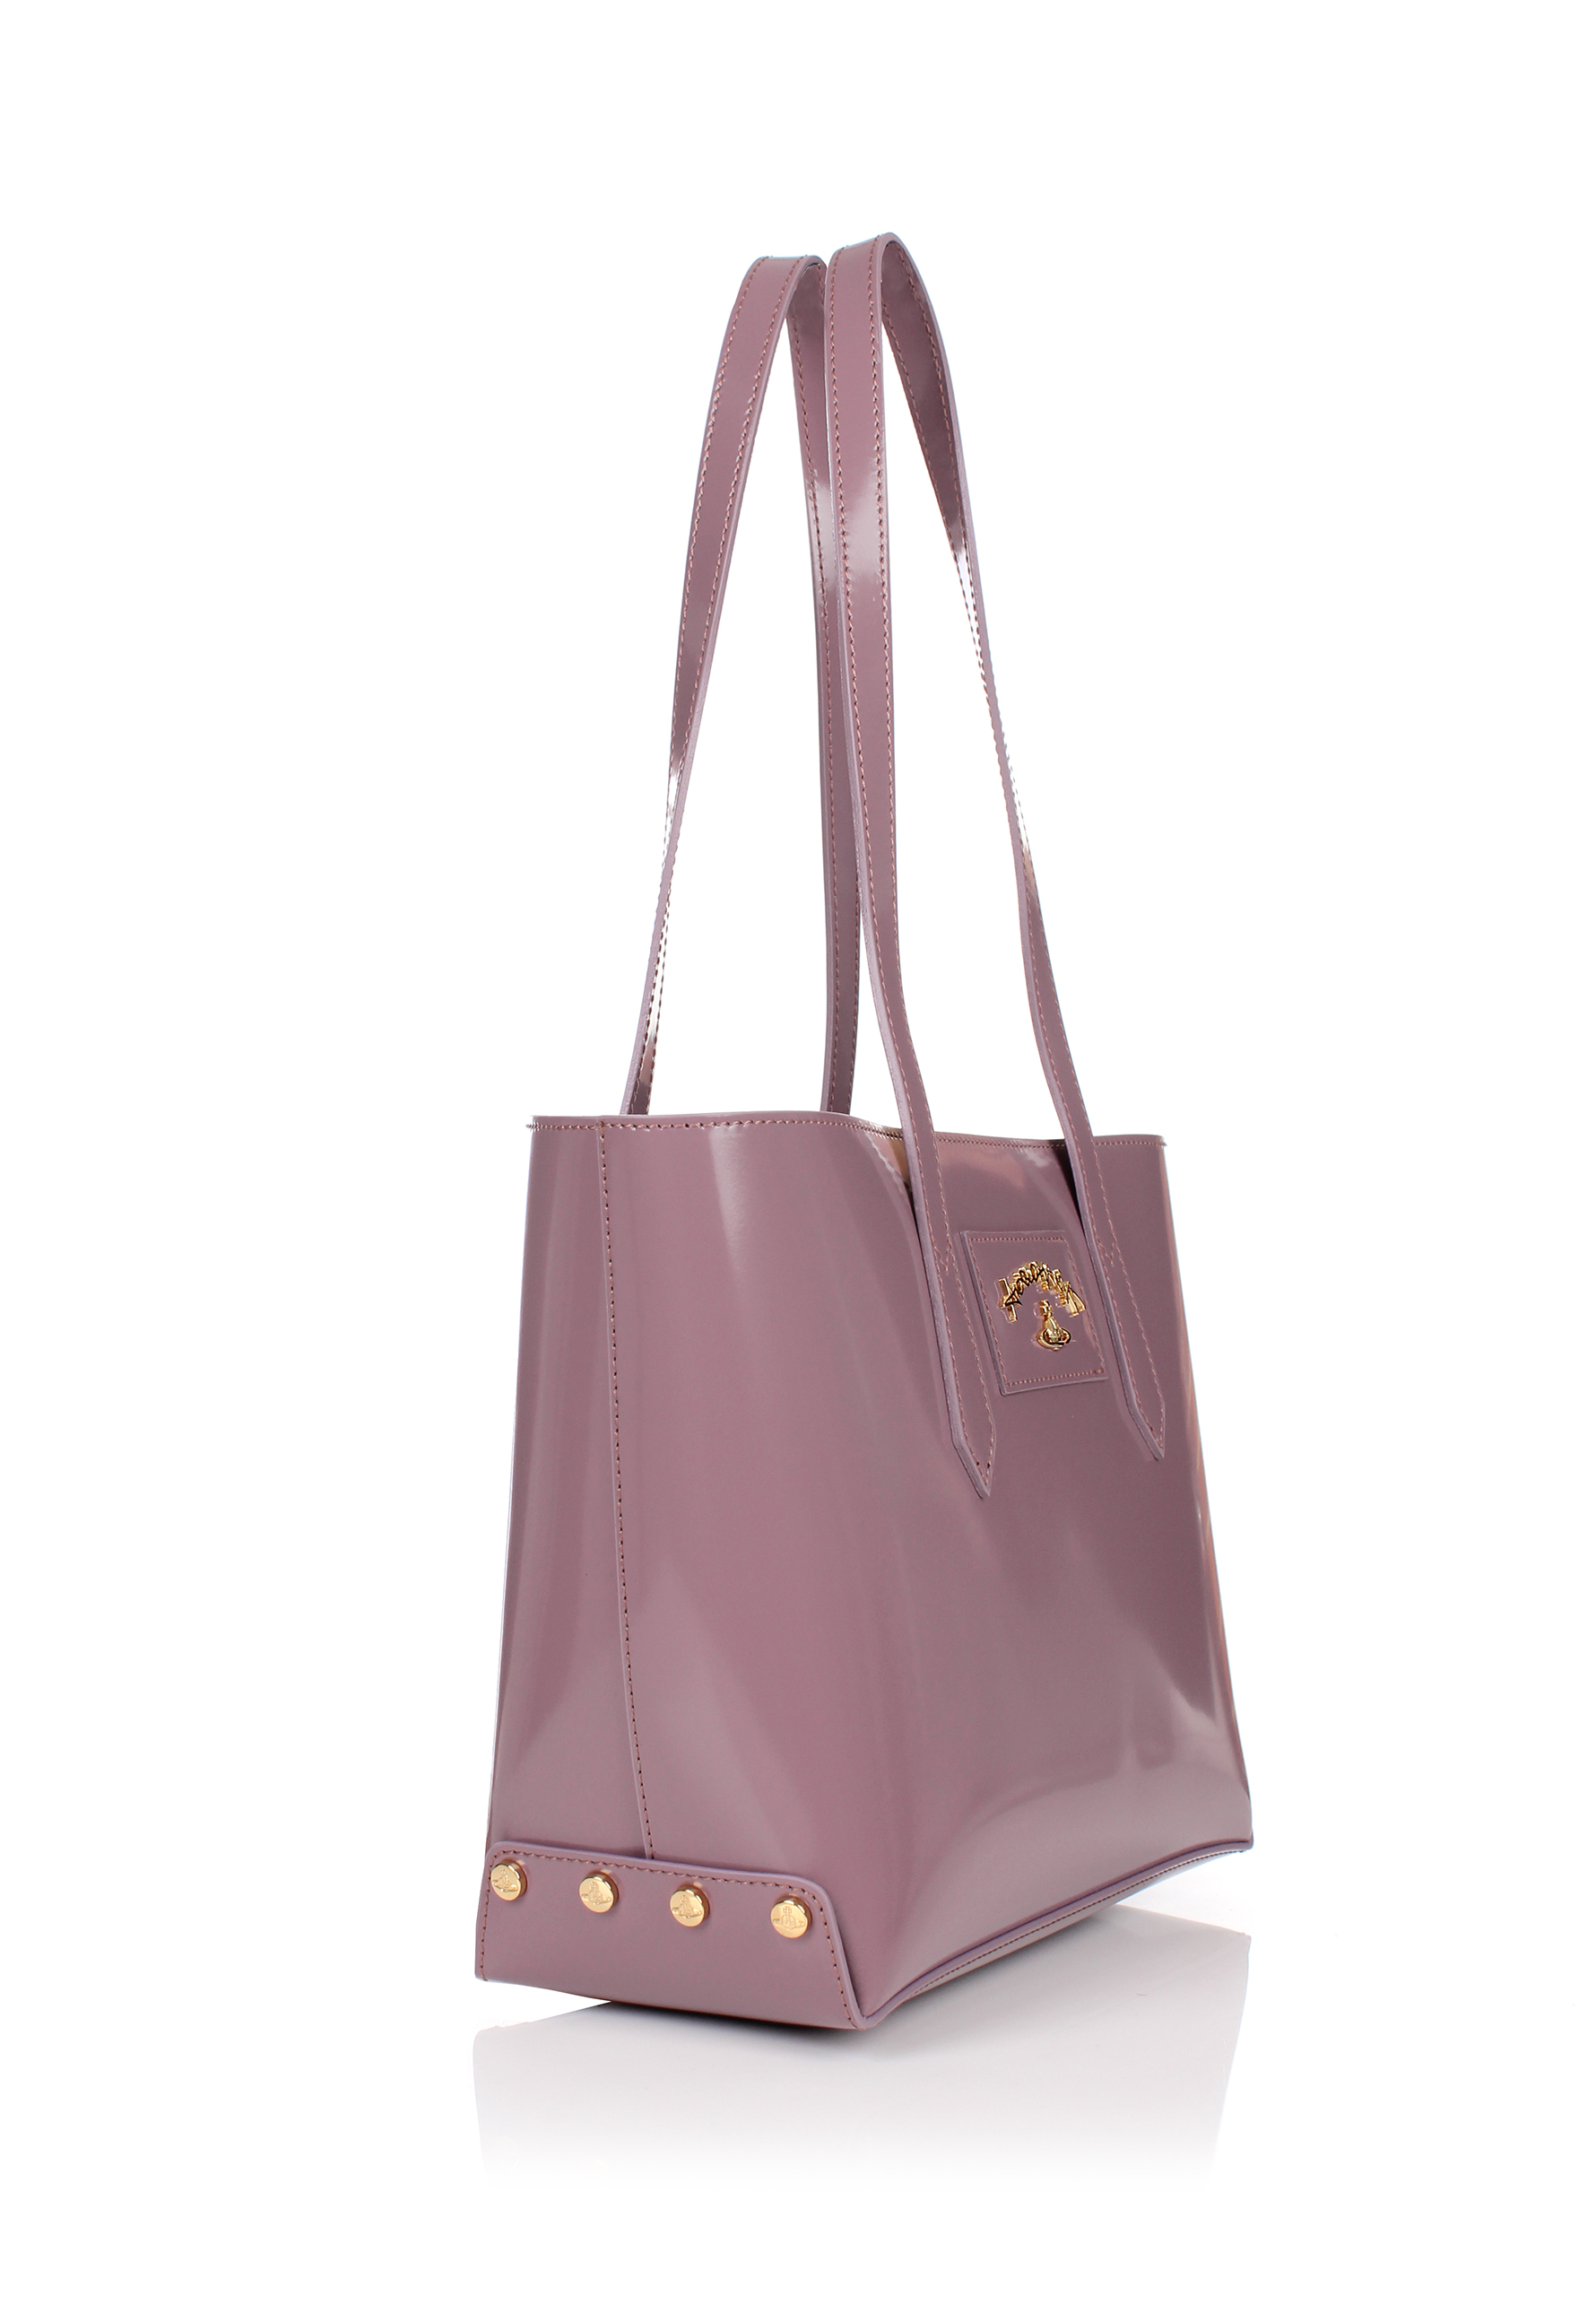 52c99e6792 Lyst - Vivienne Westwood Newcastle 7252 Small Shopper Pink in Pink